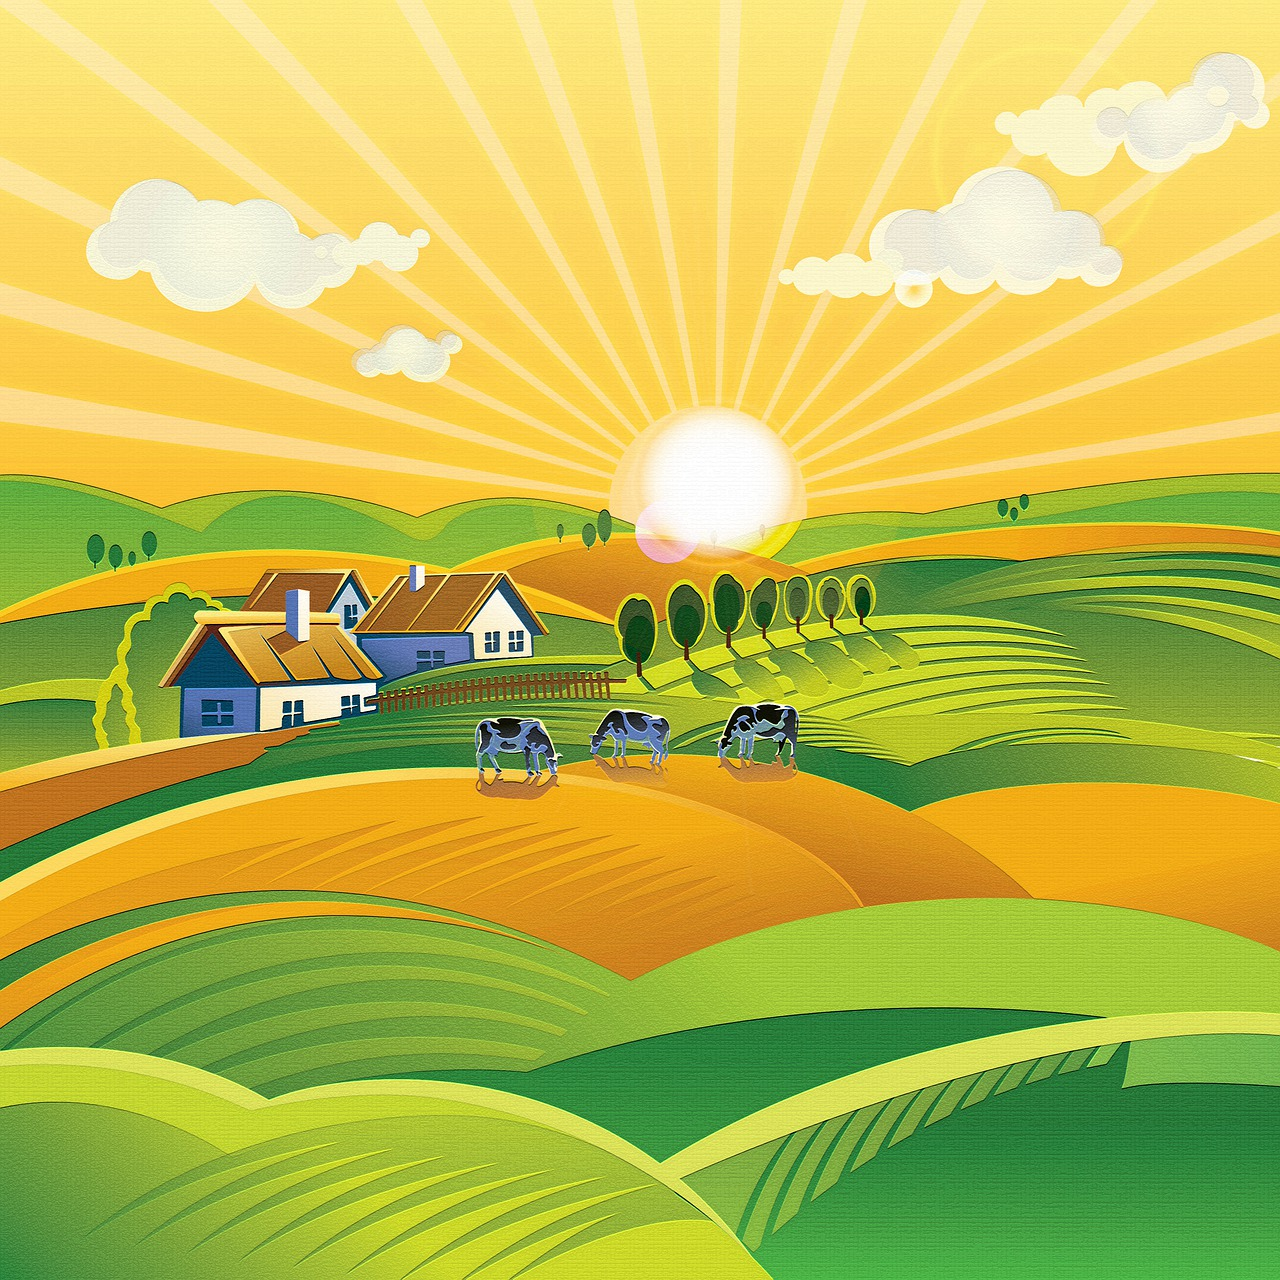 Agricultural Management Practices Grade 12 2020 past exam papers and memos for revision